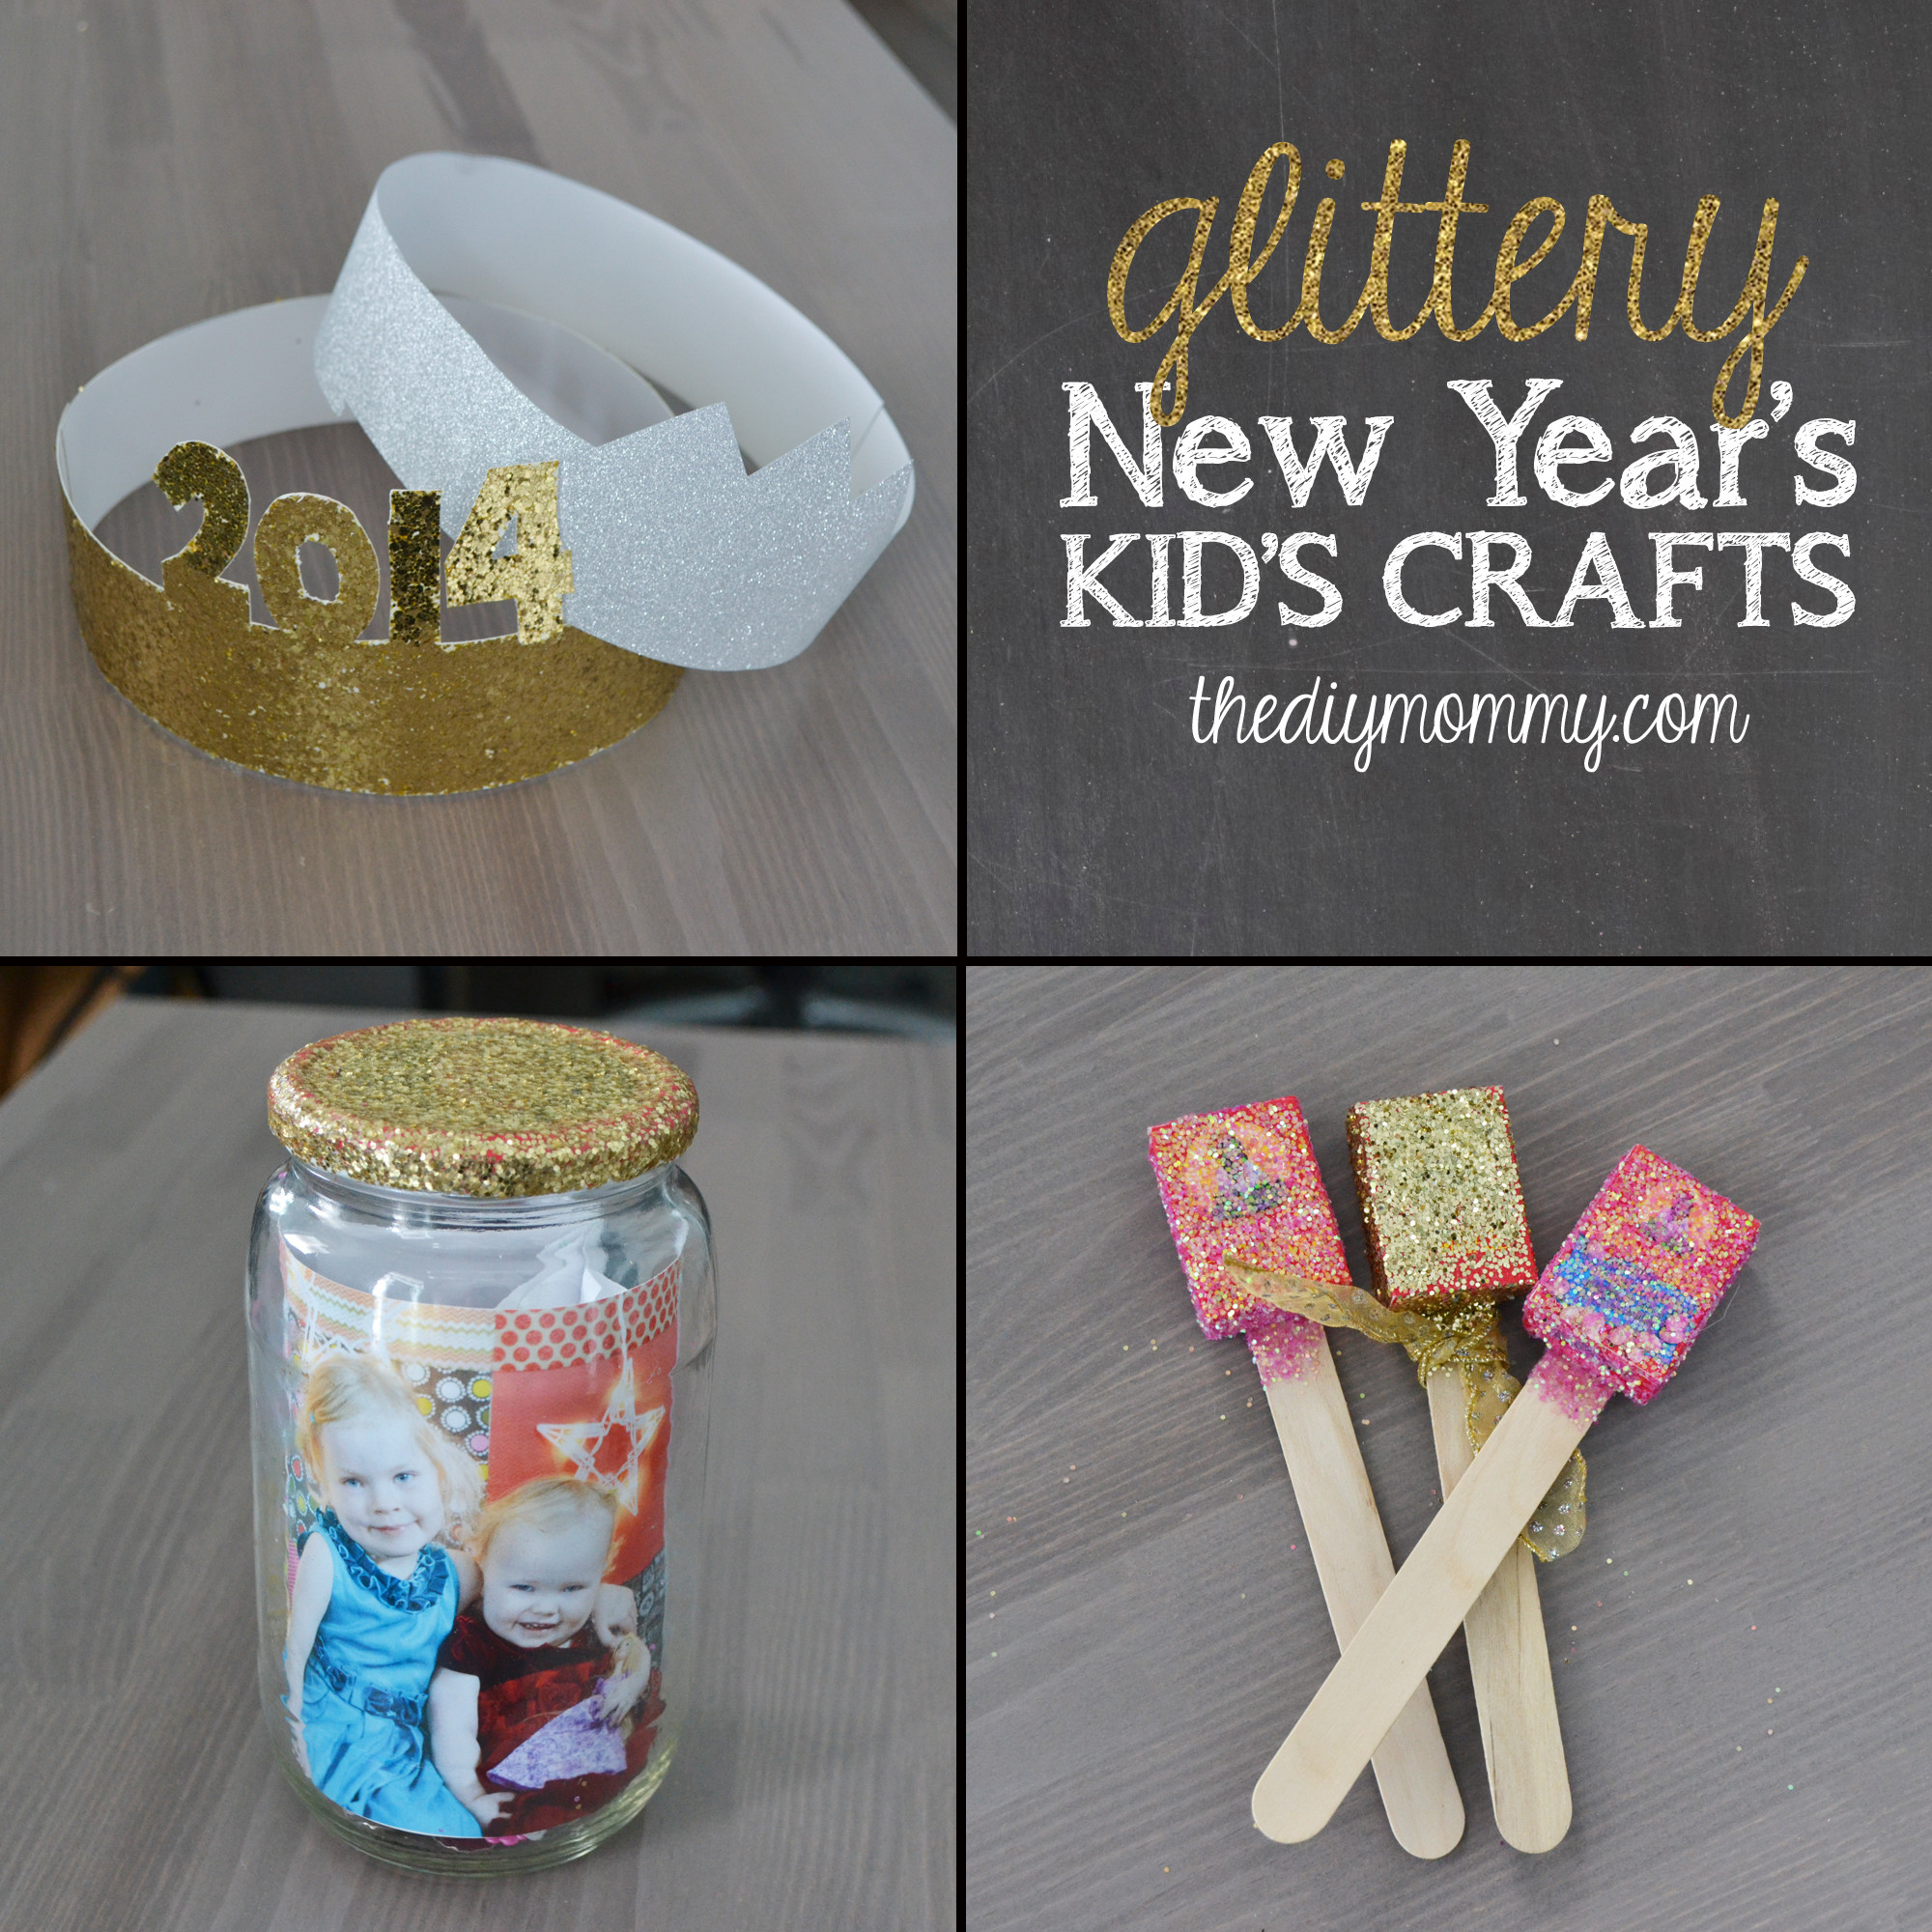 DIY Craft Ideas For Kids  Make Glittery New Year's Kid's Crafts – The News